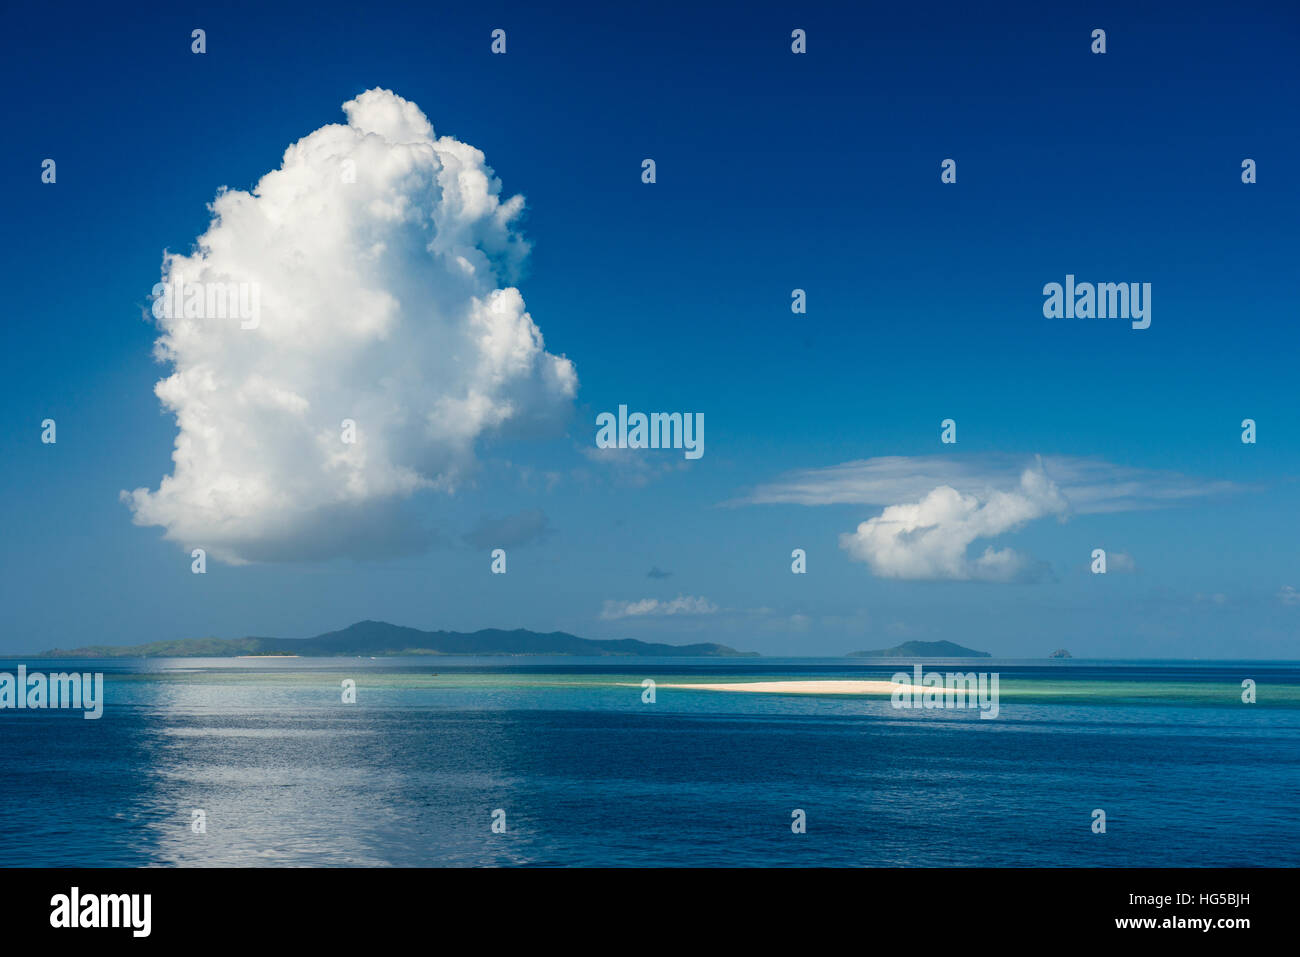 Sand bank in the flat ocean, Mamanuca Islands, Fiji, South Pacific - Stock Image